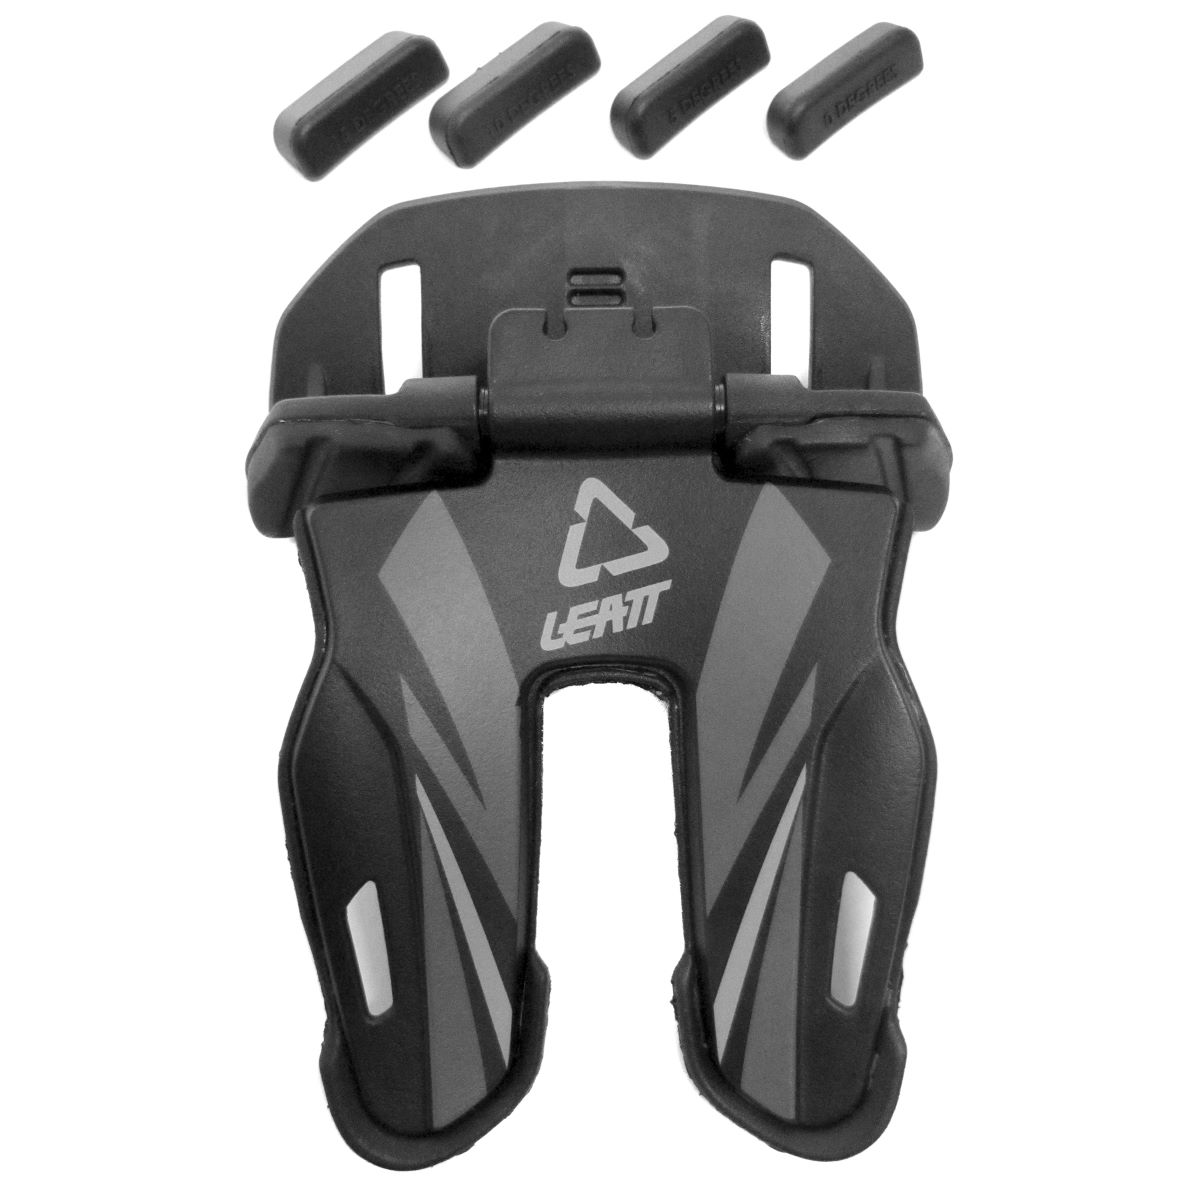 Leatt DBX 5.5 Junior Thoracic Pack - One Size Black | Body Protectors